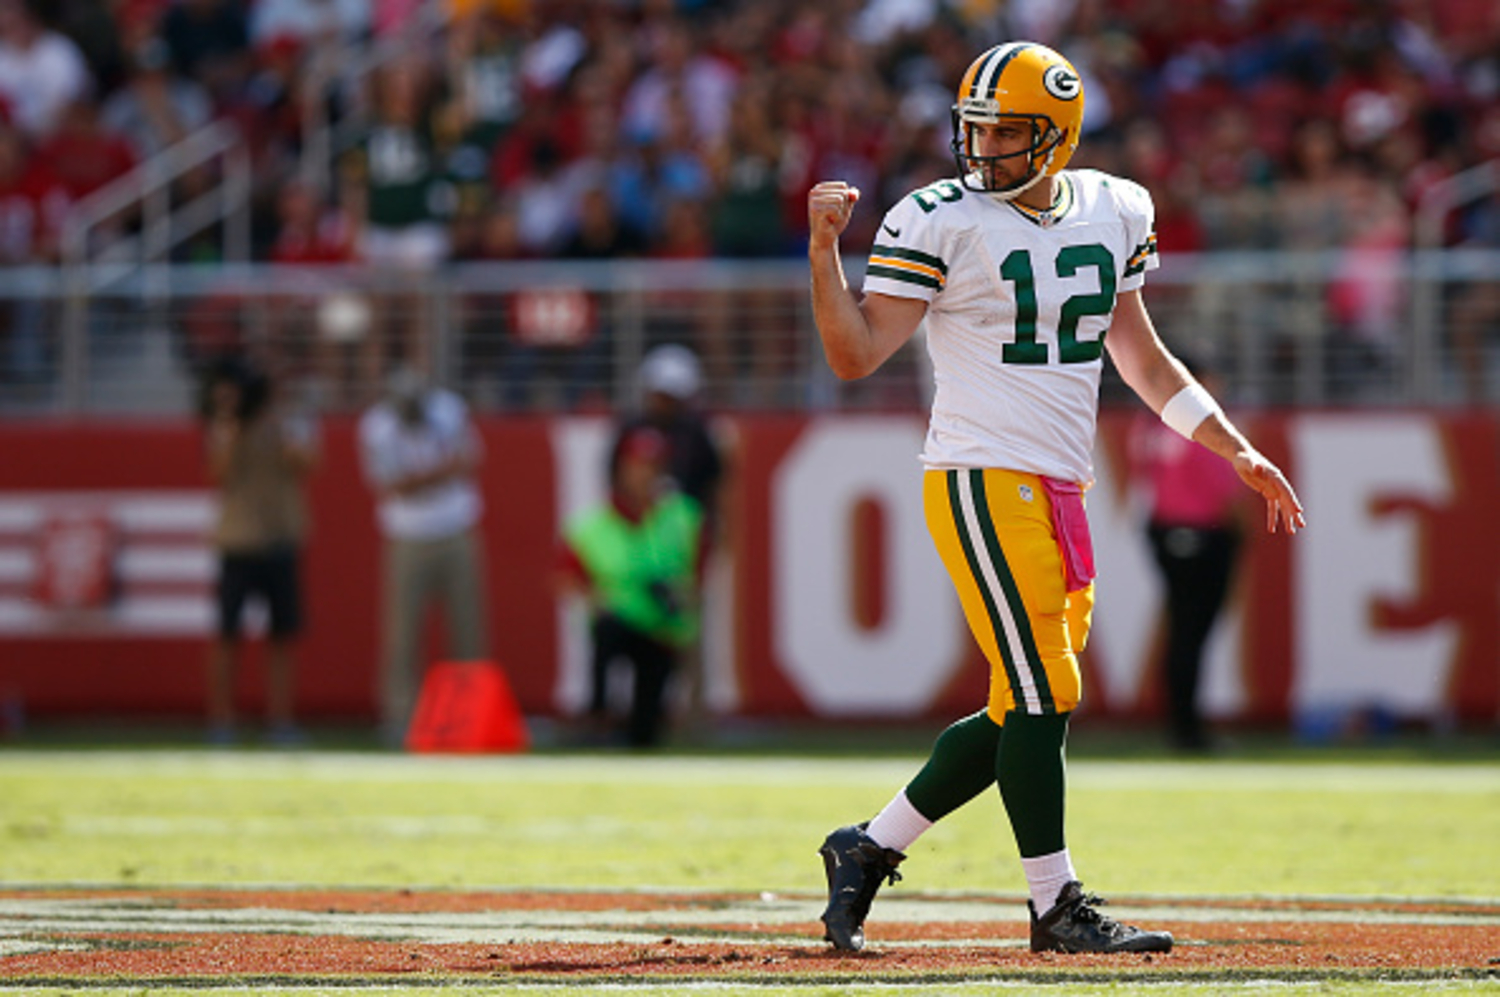 Aaron Rodgers was not a big-time recruit out of high school